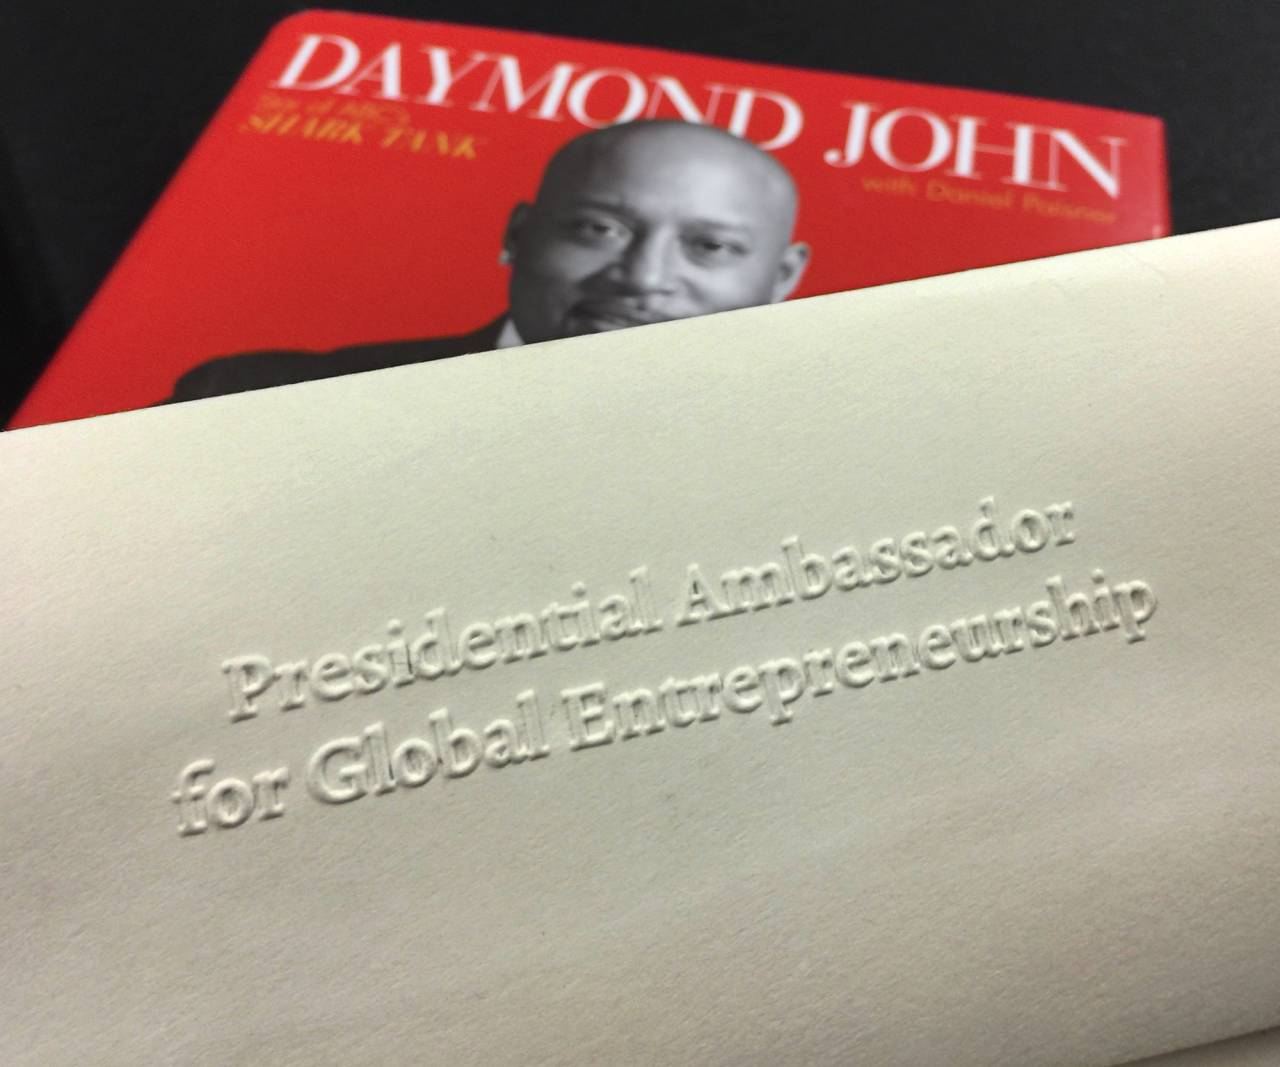 Daymond John, entrepreneurs, branding and david brier